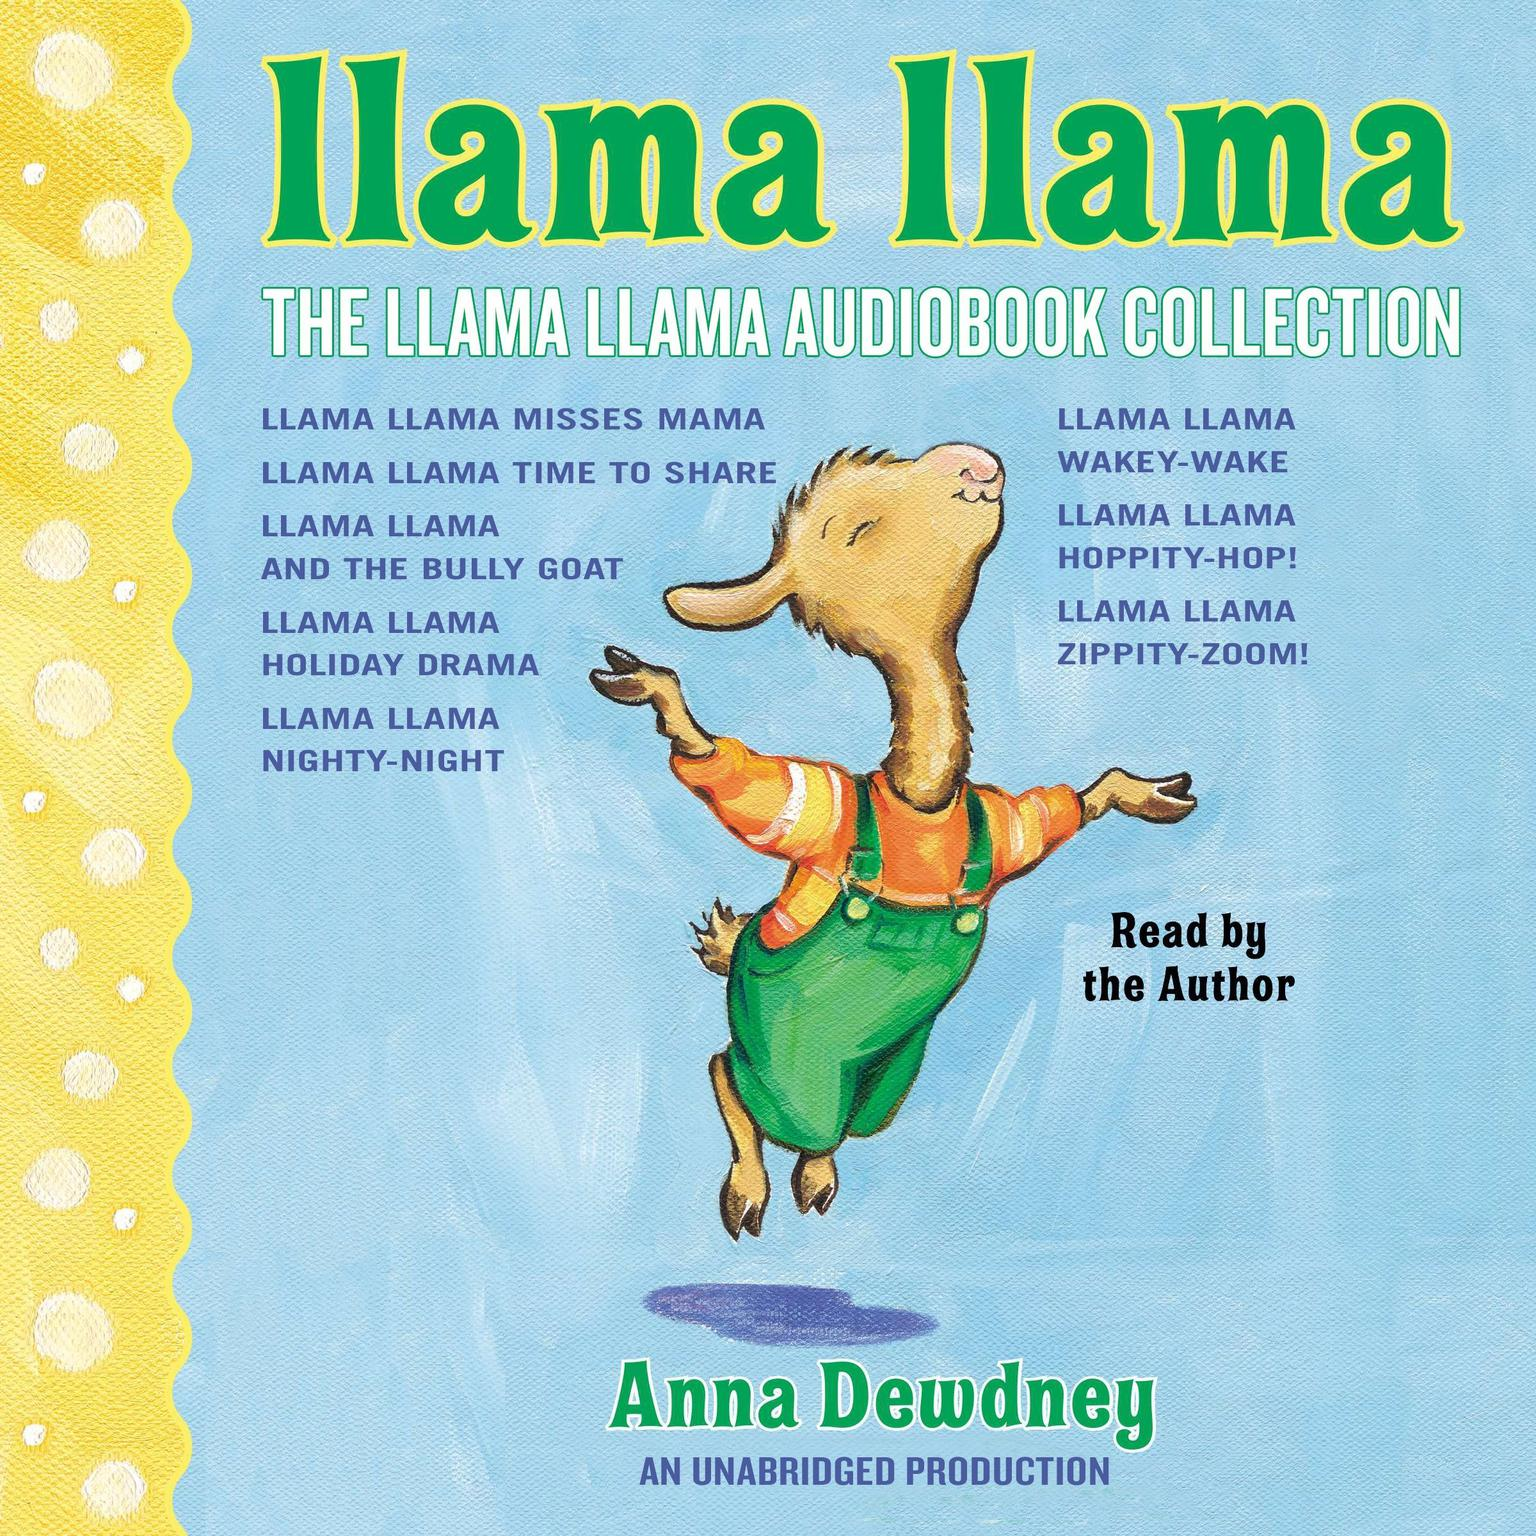 Printable The Llama Llama Audiobook Collection: Llama Llama Misses Mama; Llama Llama Time to Share; Llama Llama and the Bully Goat; Llama Llama Holiday Drama; Llama Llama Nighty-Night; and 3 more! Audiobook Cover Art